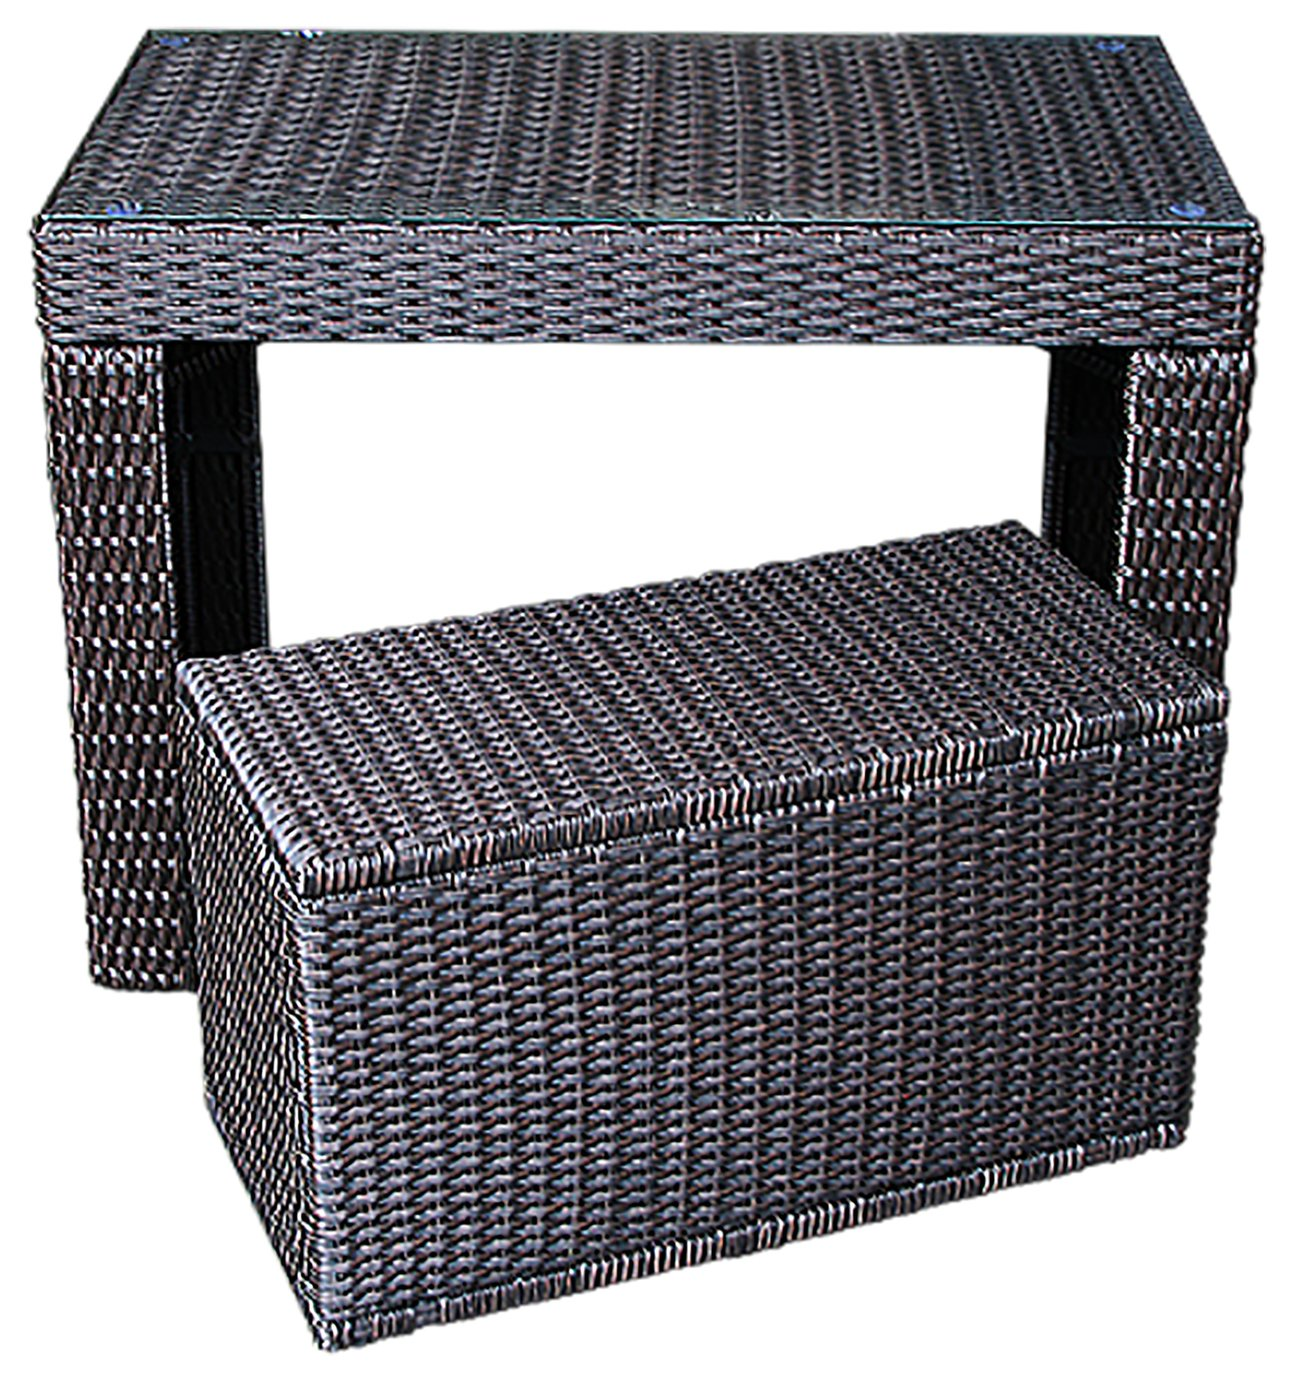 Canadian Spa Straight Bar Set Square Surround Furniture at Argos review